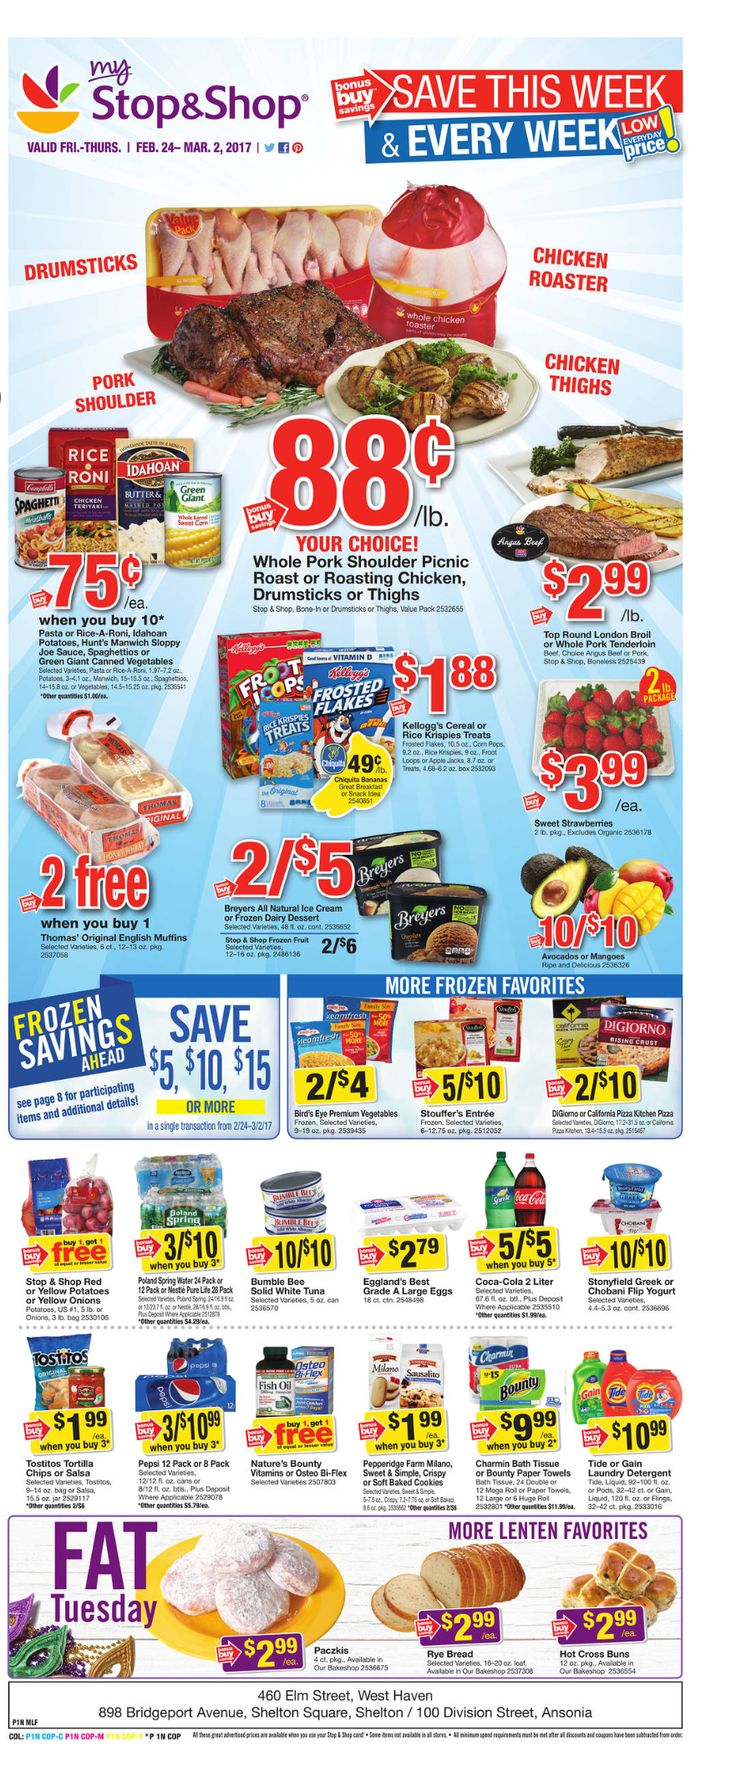 Stop and Shop Circular February 24 - March 2, 2017 - http://www.olcatalog.com/grocery/stop-and-shop-circular.html